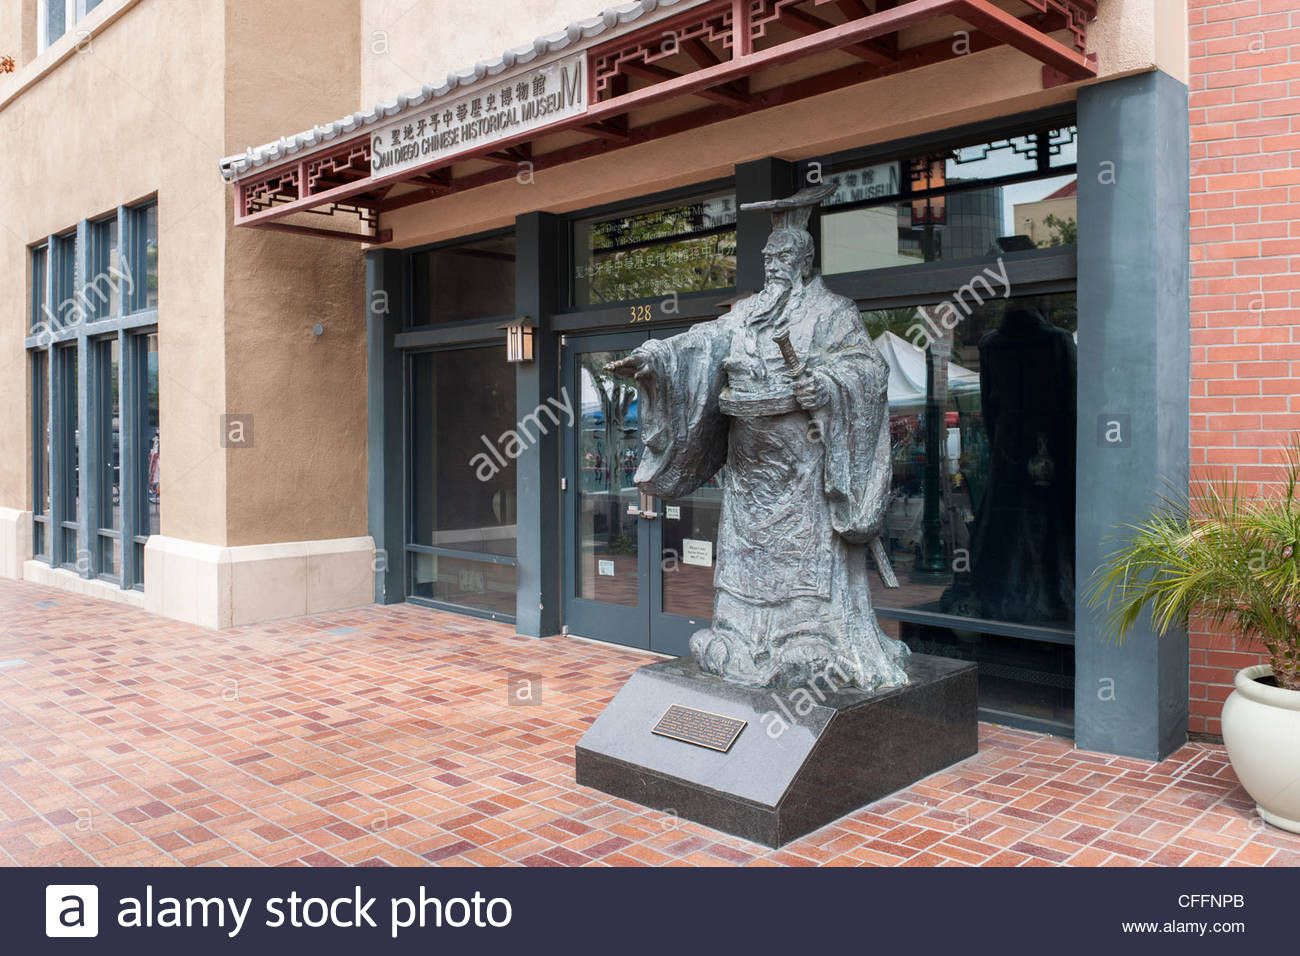 San Diego Visitor Information Center San Diego, San Diego Chinese Historical Museum Stock Photo, Royalty Free ...